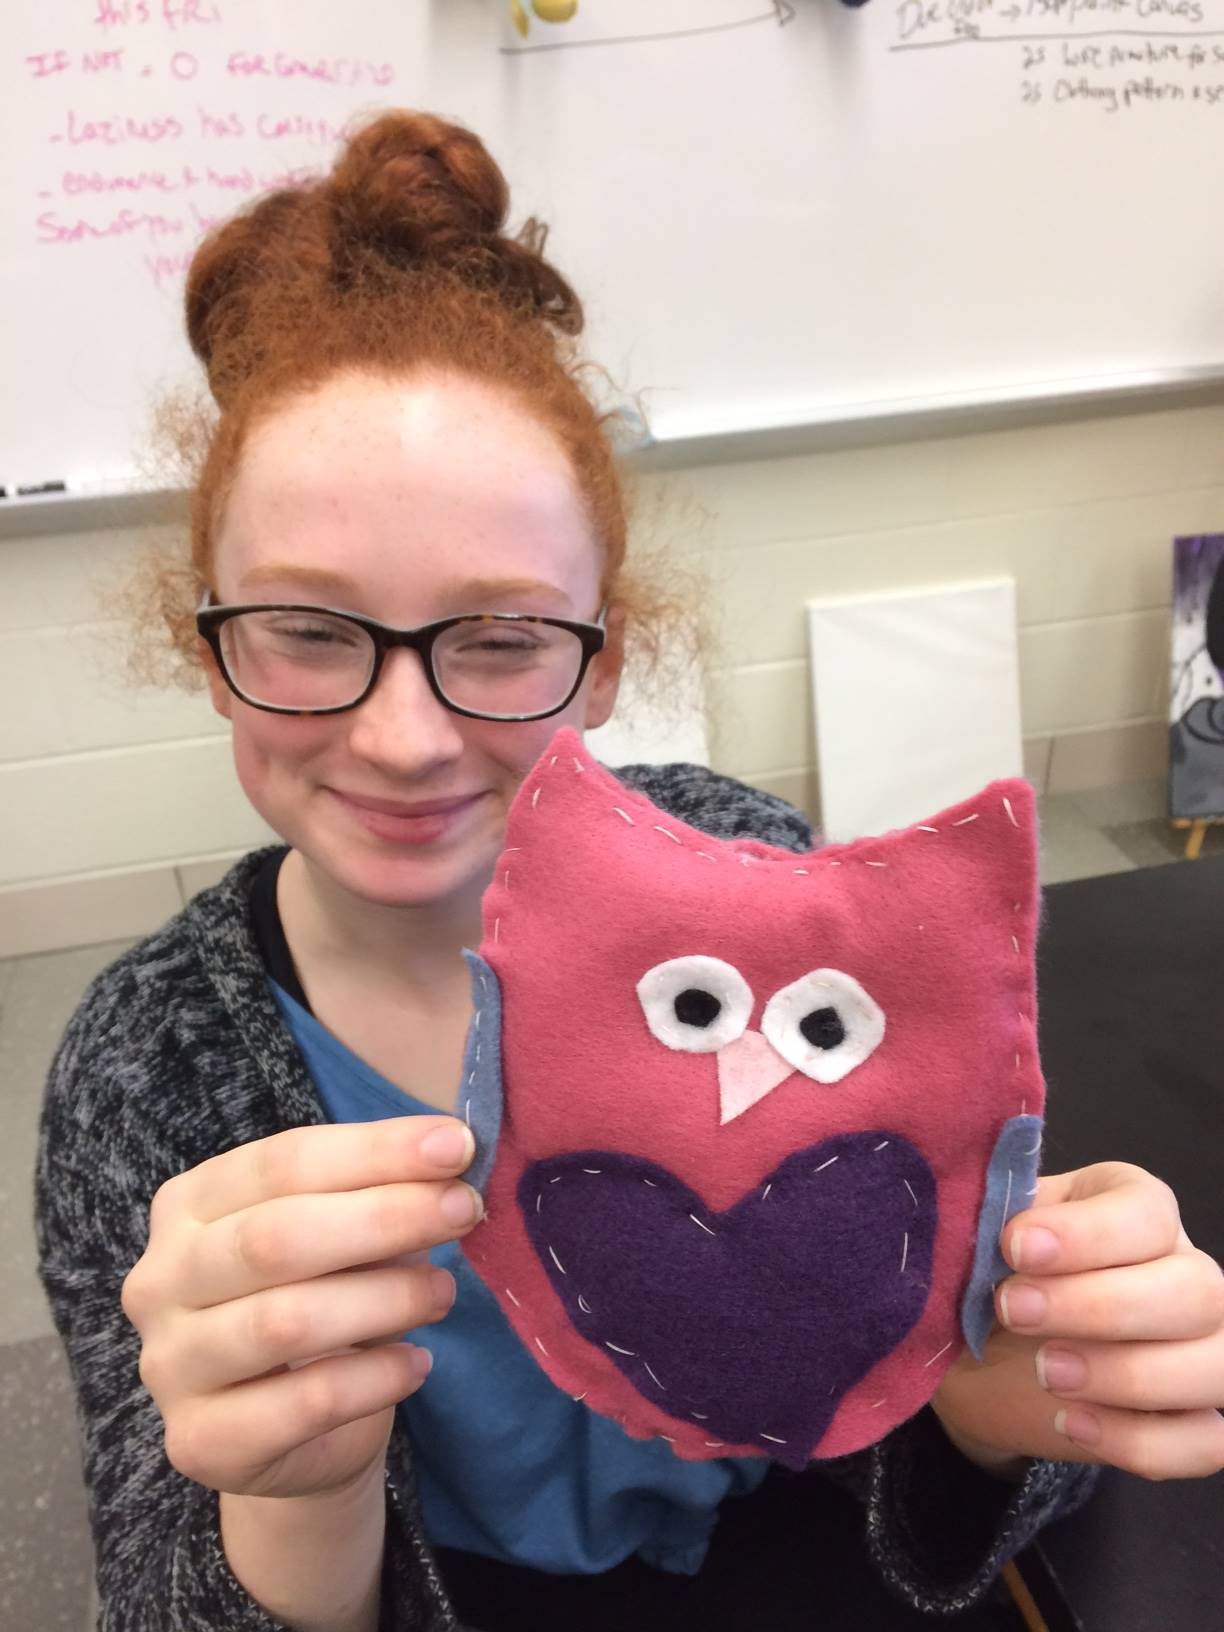 Sewing Projects - Art Class